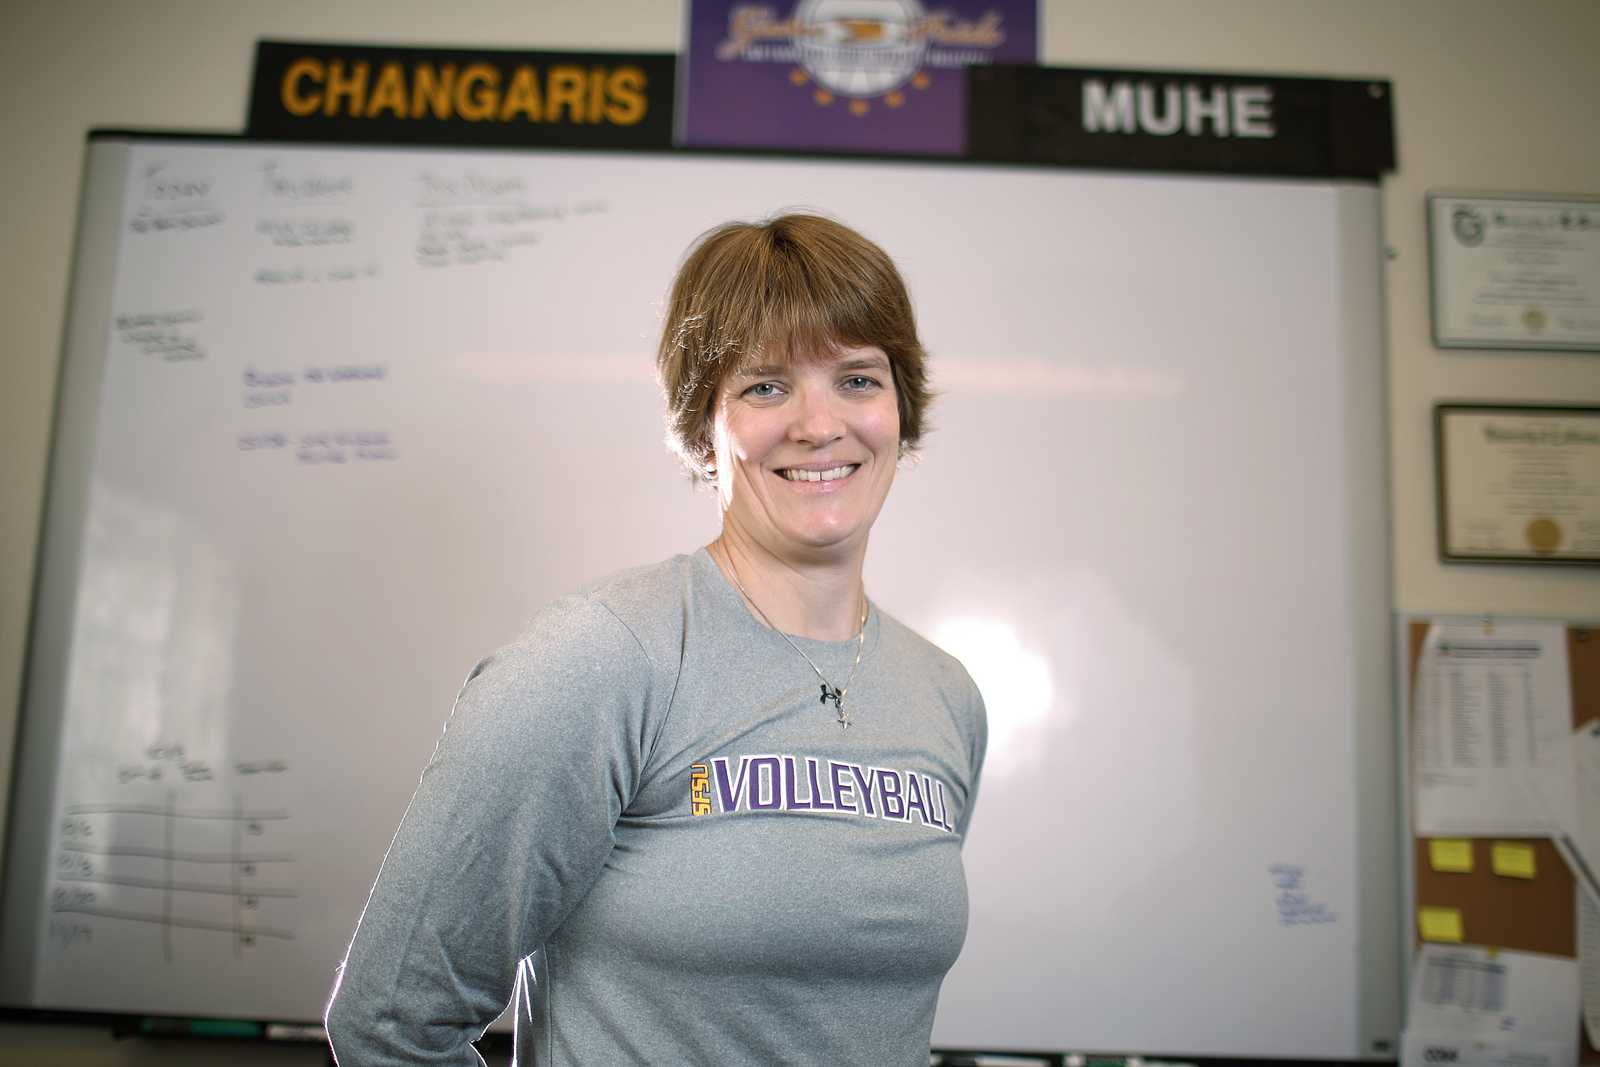 Jill Muhe, new head coach for the SF State women's volleyball team, stands in her office in the Gymnasium of SF State. Muhe recently came to SF State from Briar Cliff University in Iowa.  Photo by John Ornelas / Xpress